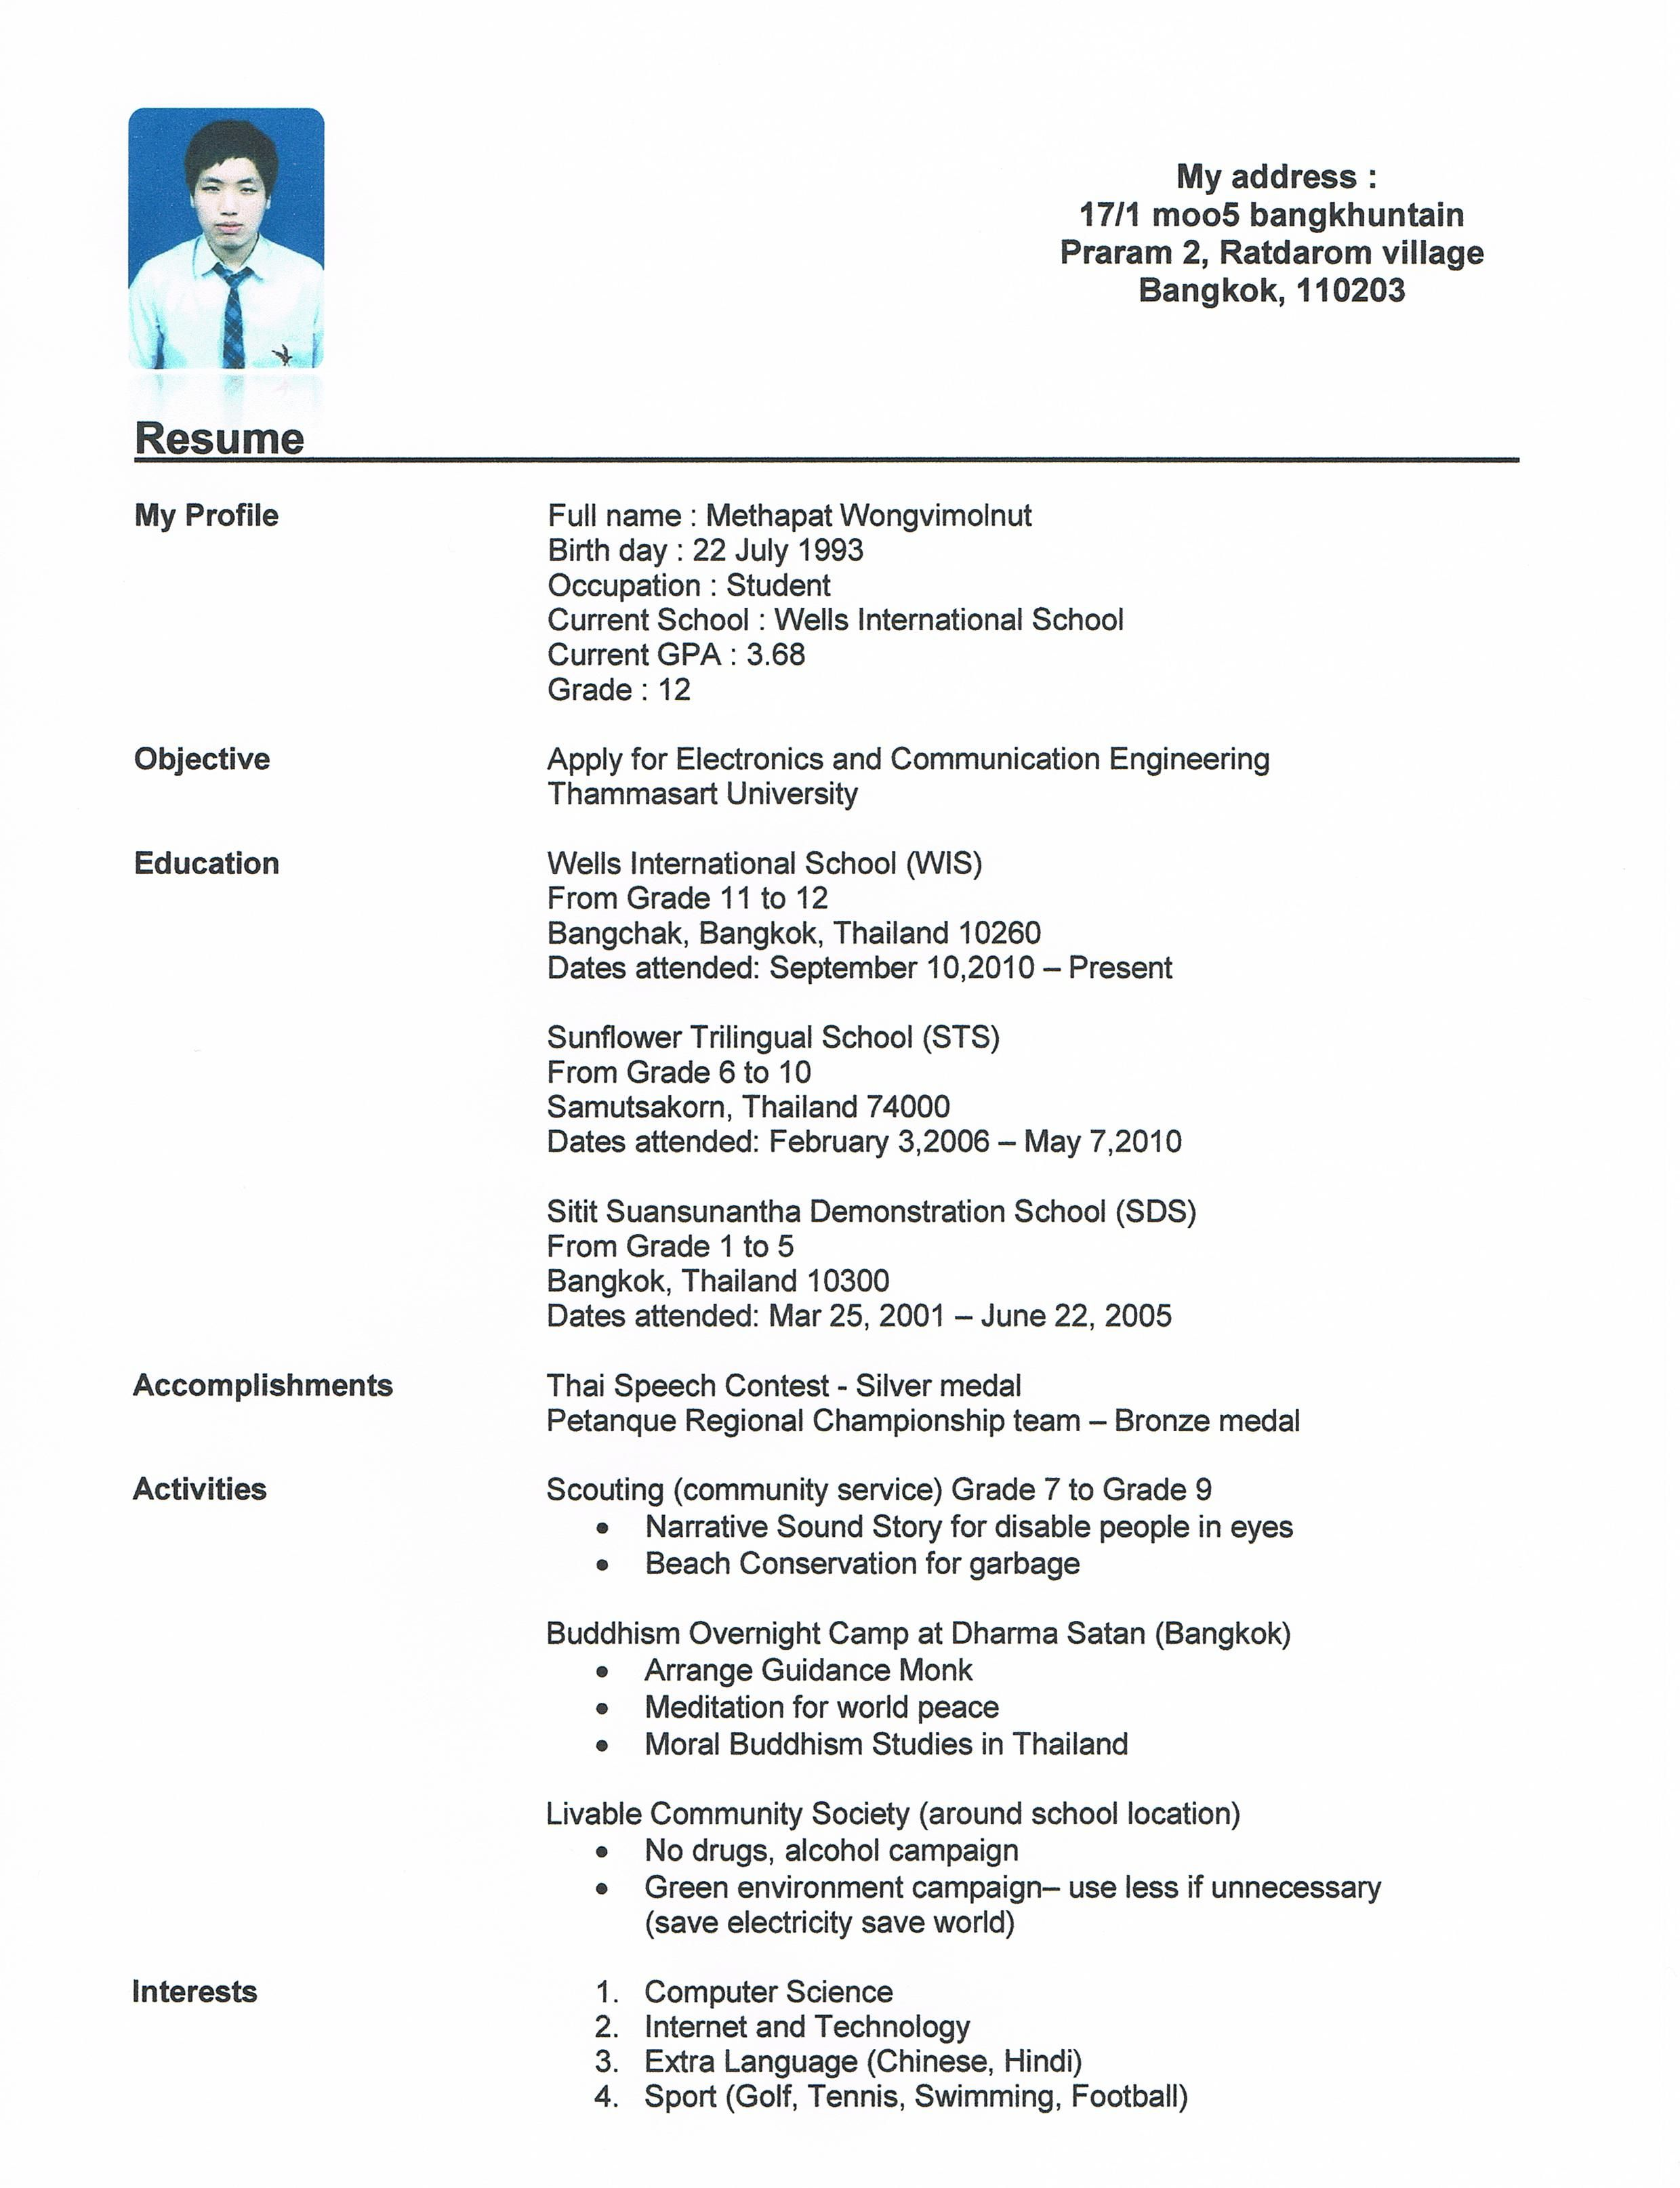 sample job resume templates for high school students student even with limited work experience graduate resume template templates and builder resumes - Sample Resume Of Student